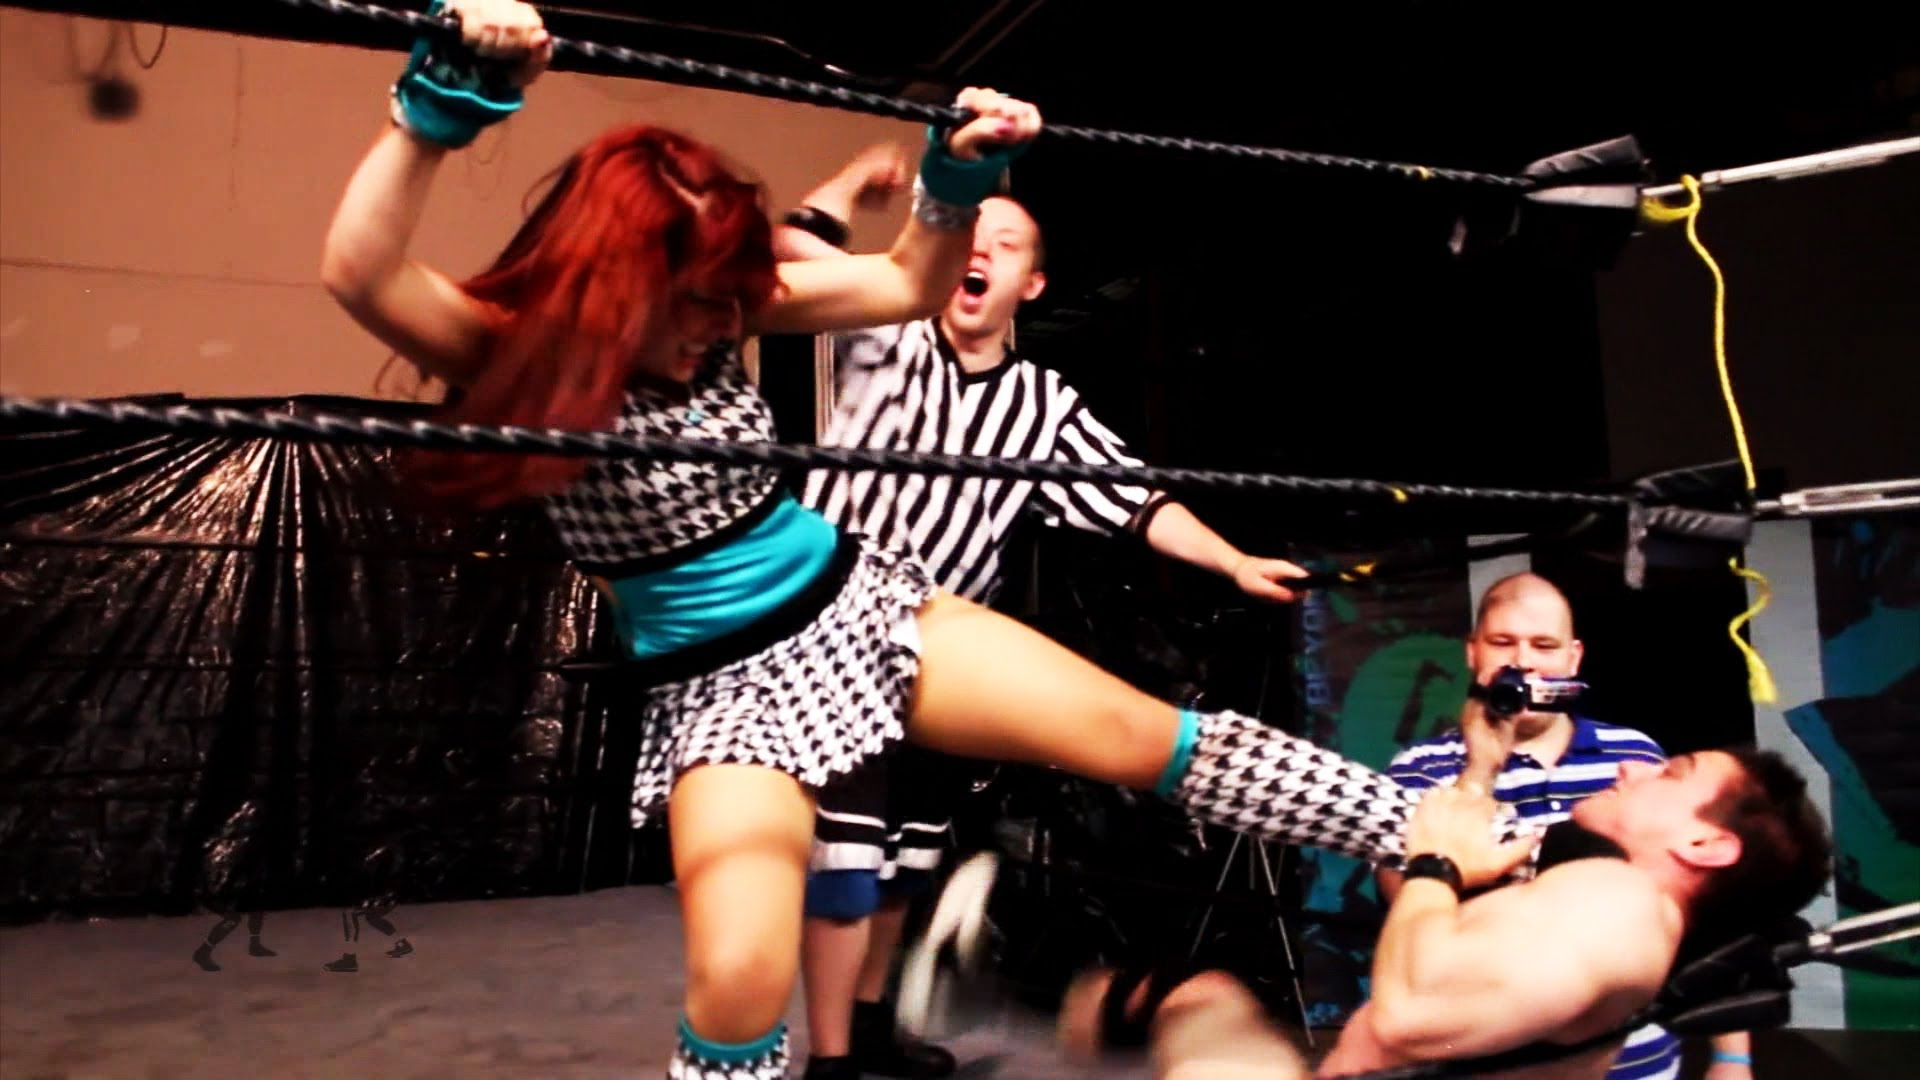 veda-scott-intergender-wrestling